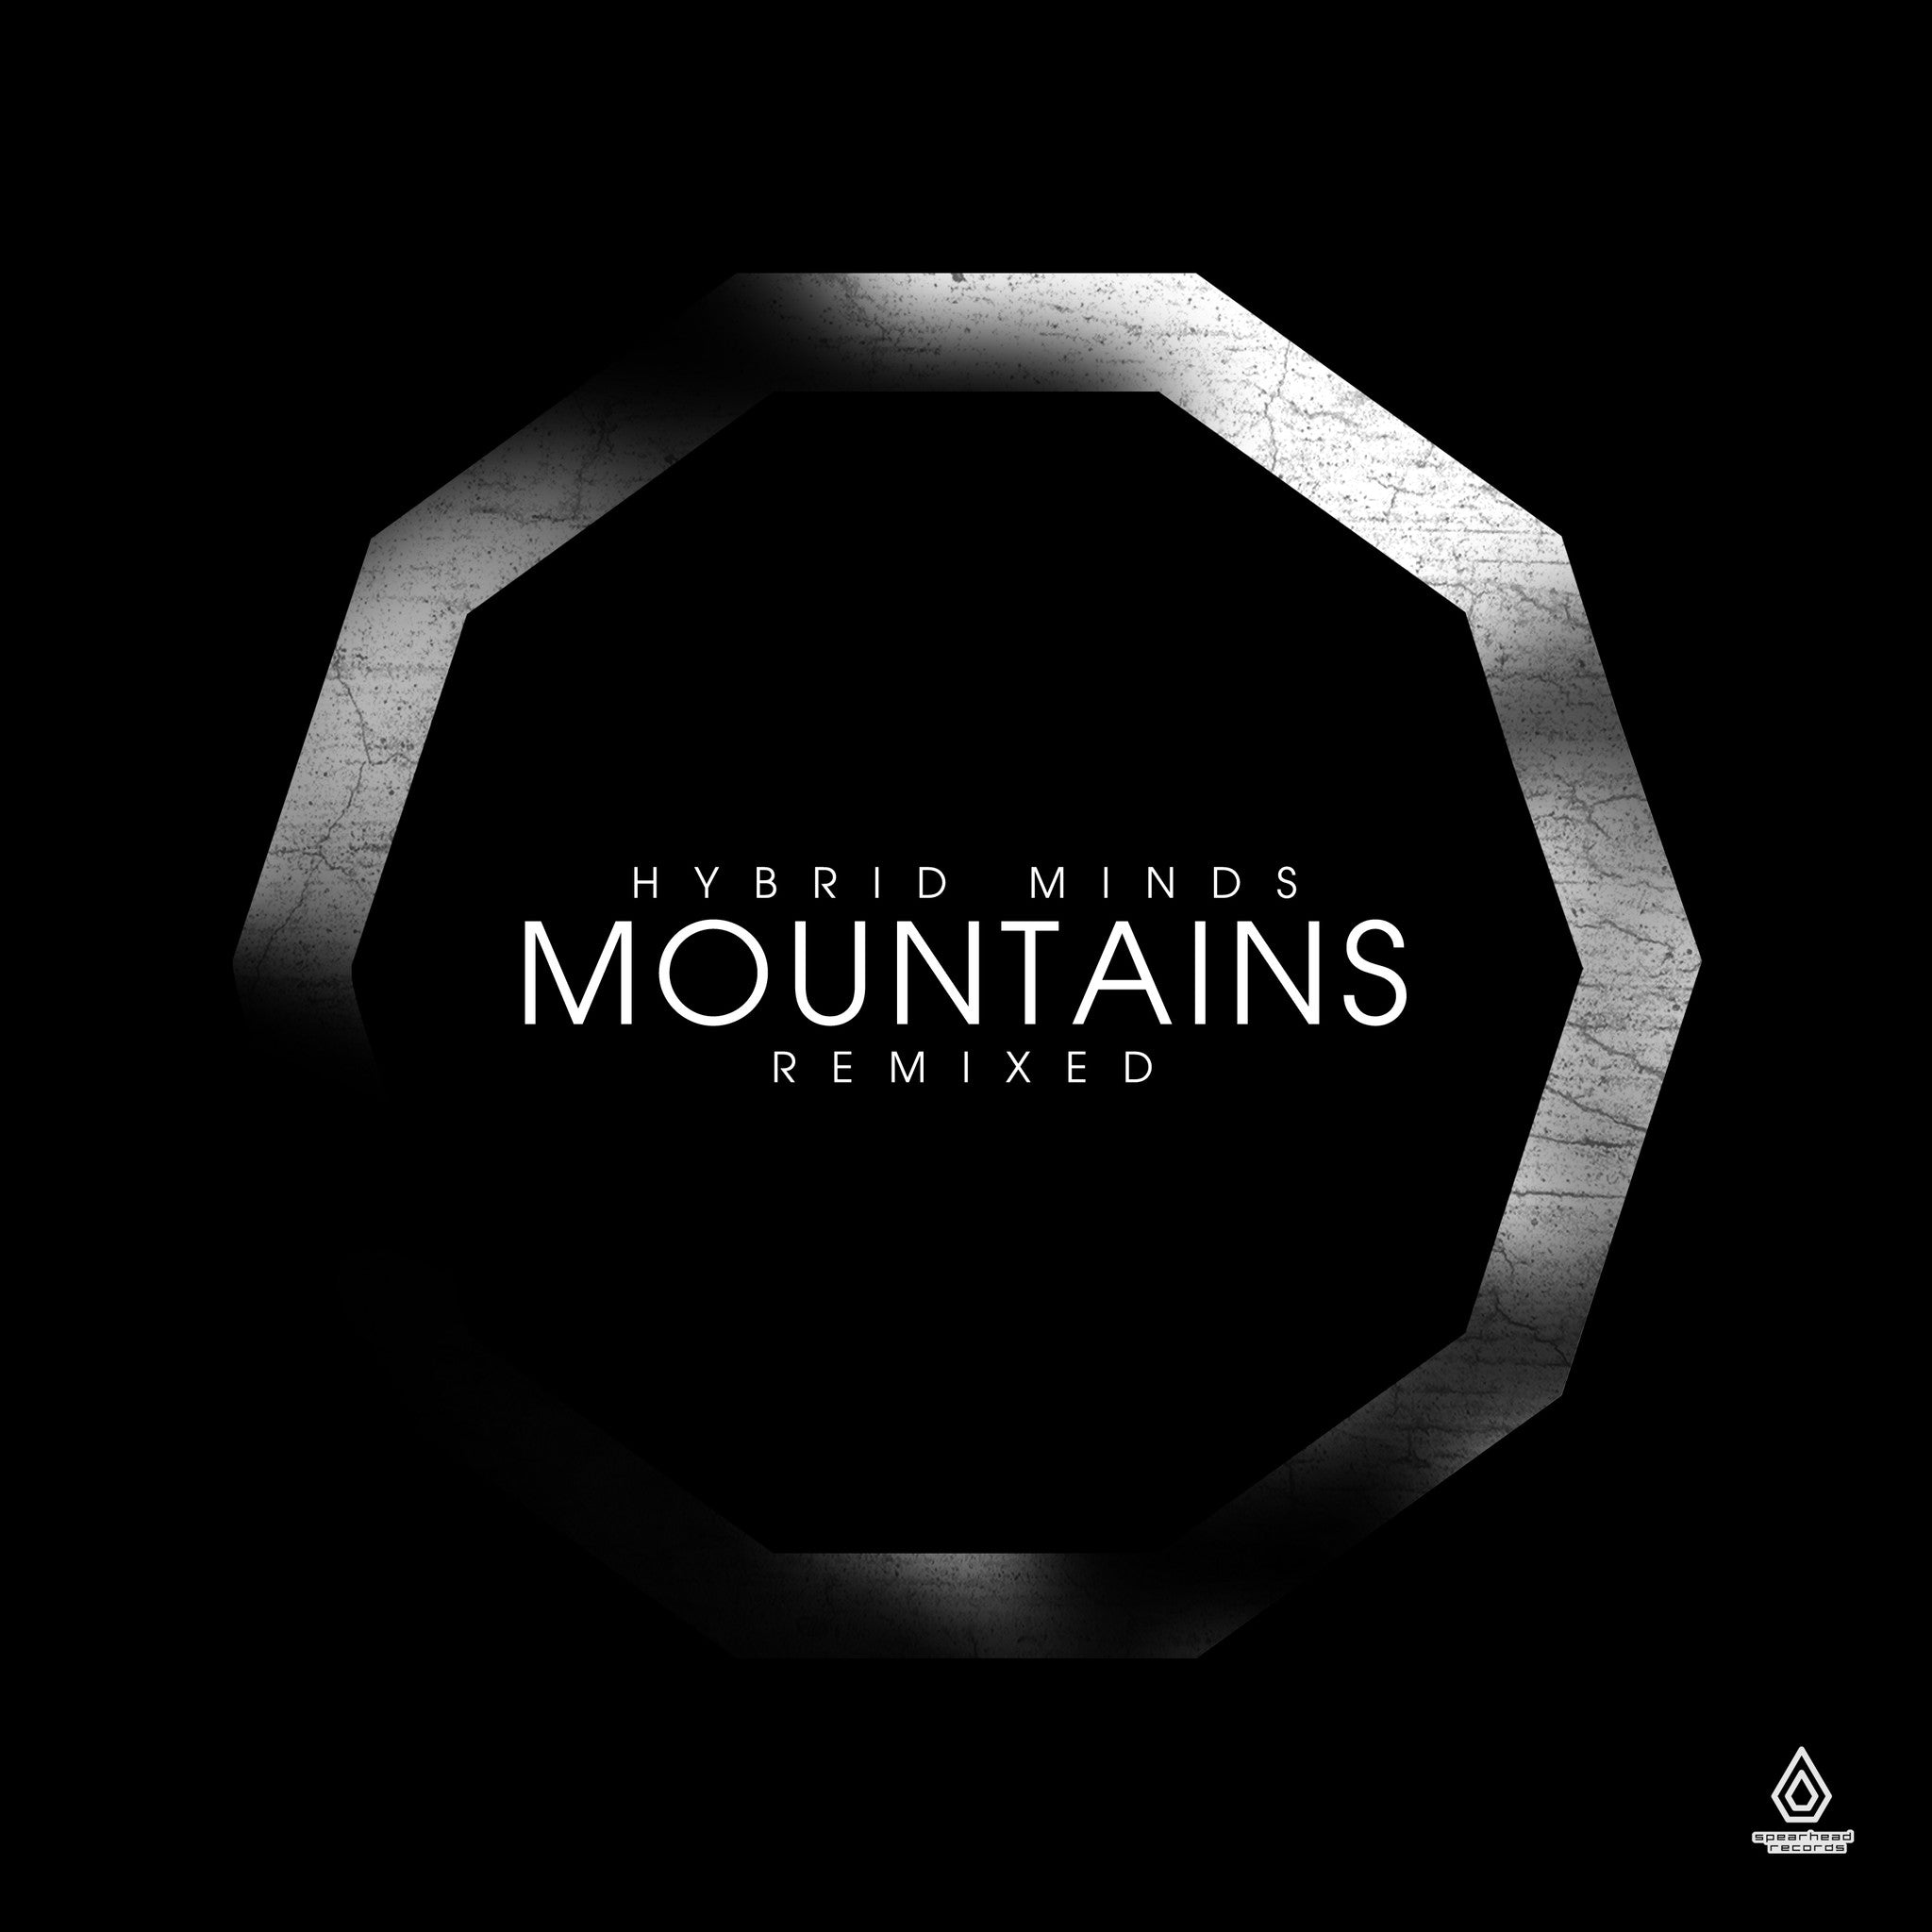 Hybrid Minds - Mountains Remixed (Includes Free CD) - Unearthed Sounds